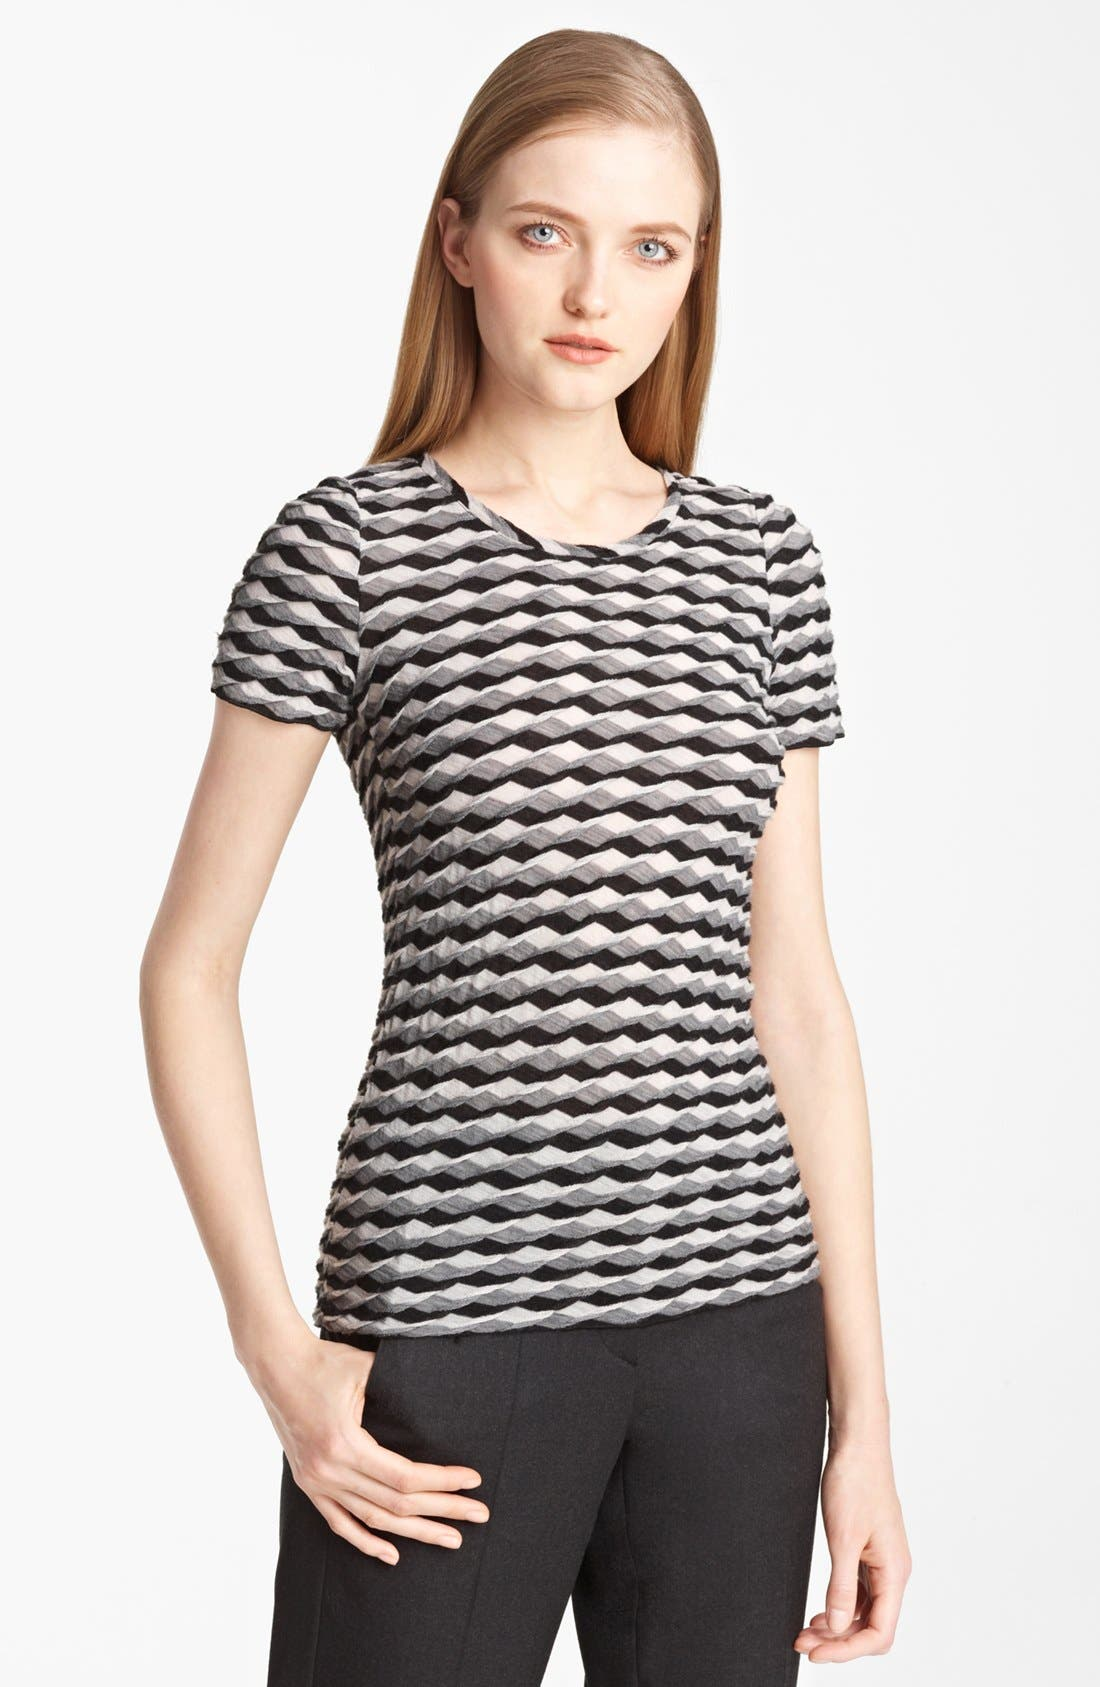 Alternate Image 1 Selected - Armani Collezioni Geometric Wave Knit Jersey Top